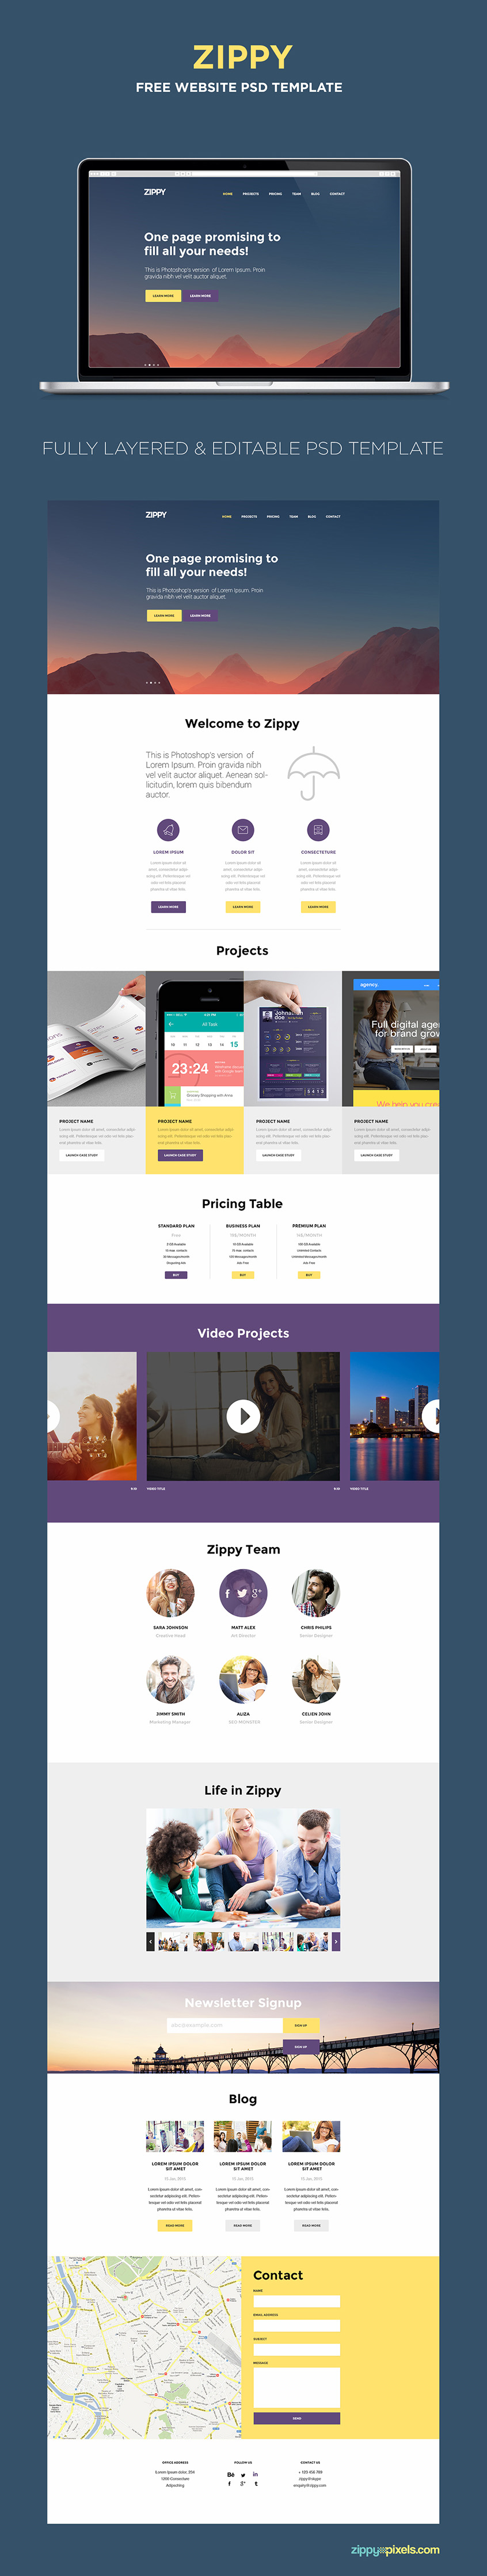 Free One Page Website Template PSD | ZippyPixels